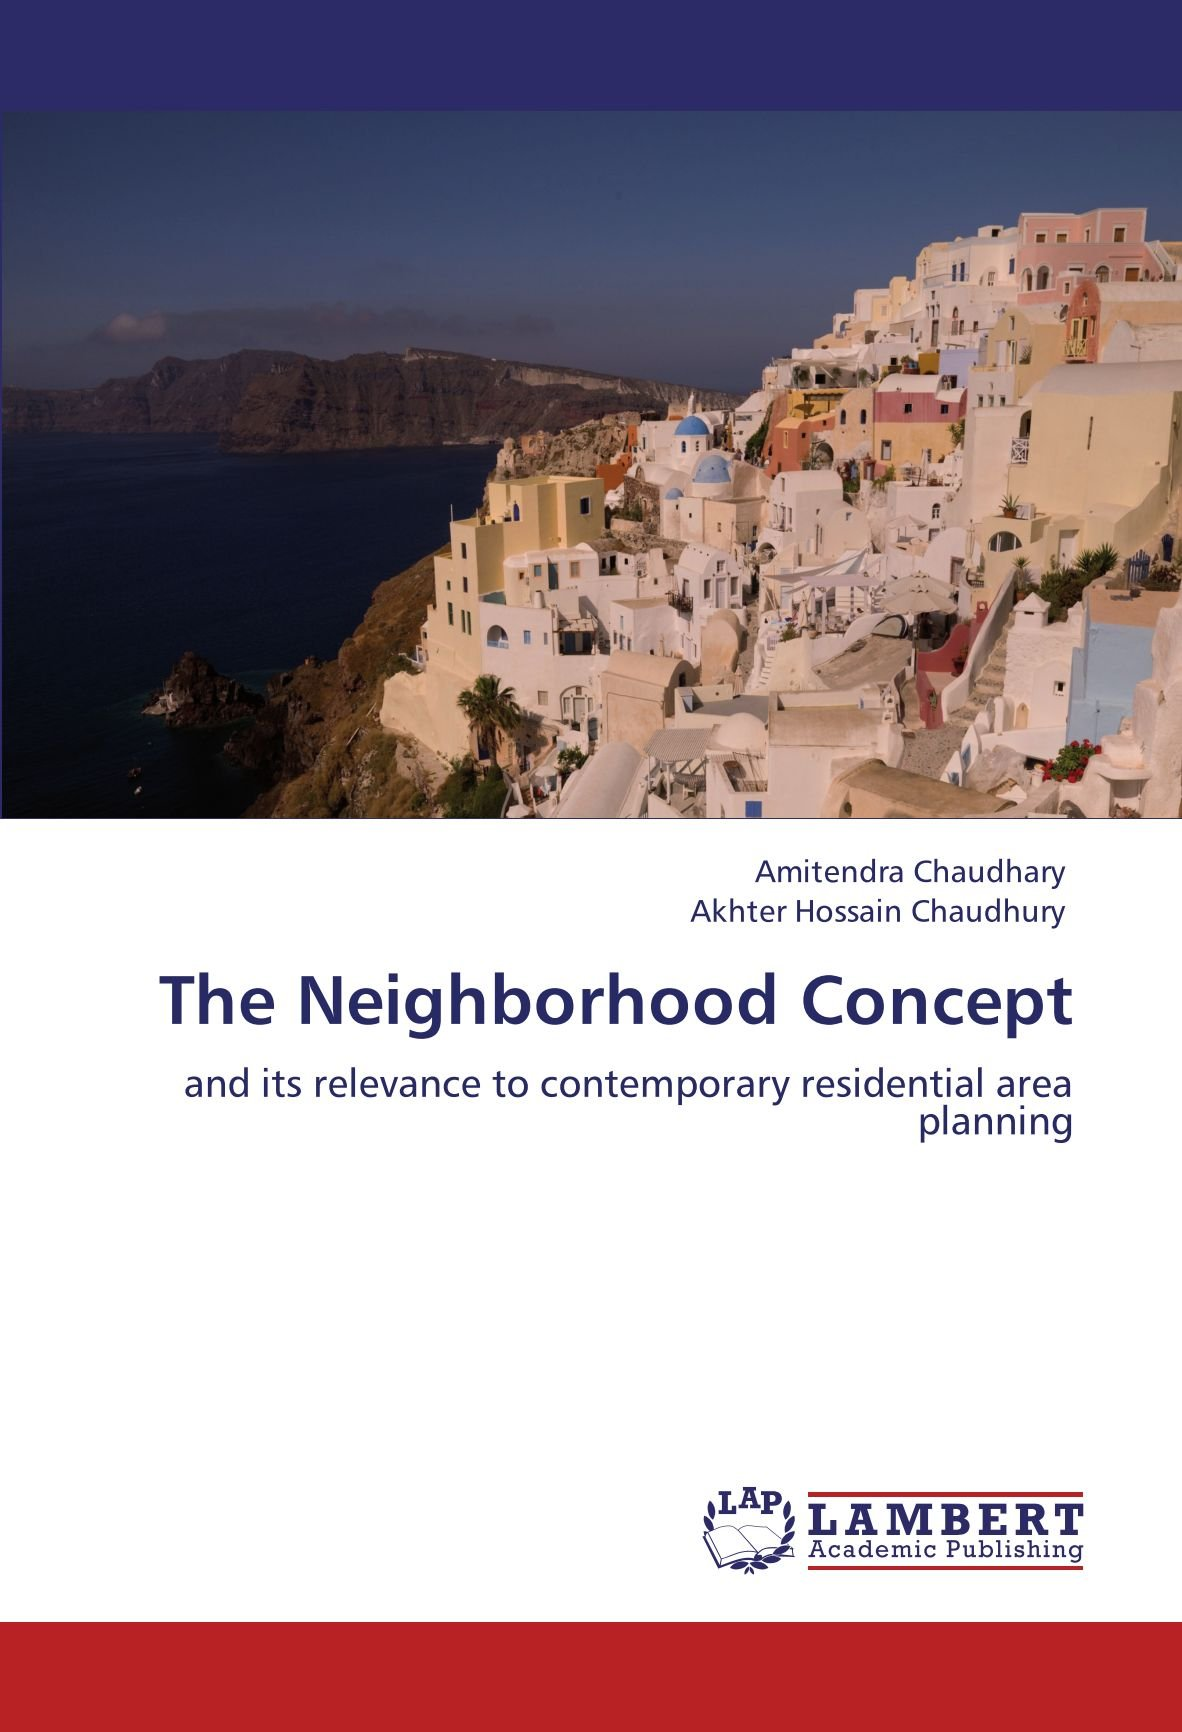 Download The Neighborhood Concept: and its relevance to contemporary residential area planning PDF